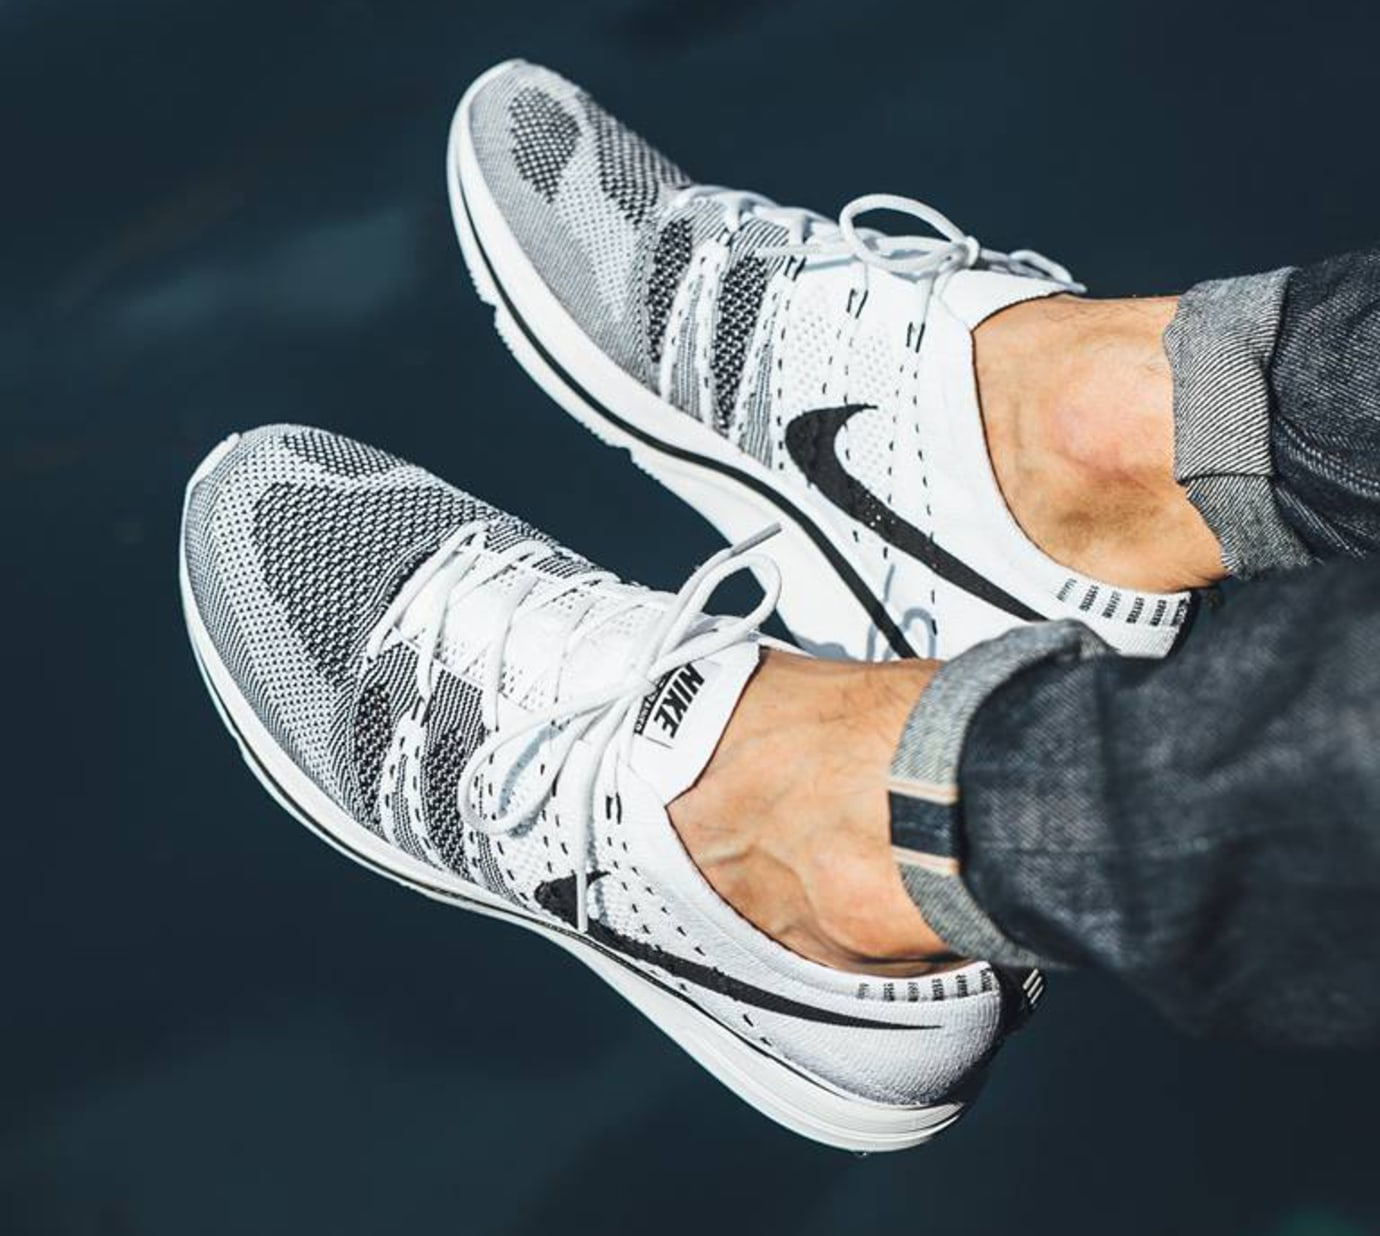 fc4e2ef434ce2 Image via Titolo White Black Nike Flyknit Trainer On Feet 4